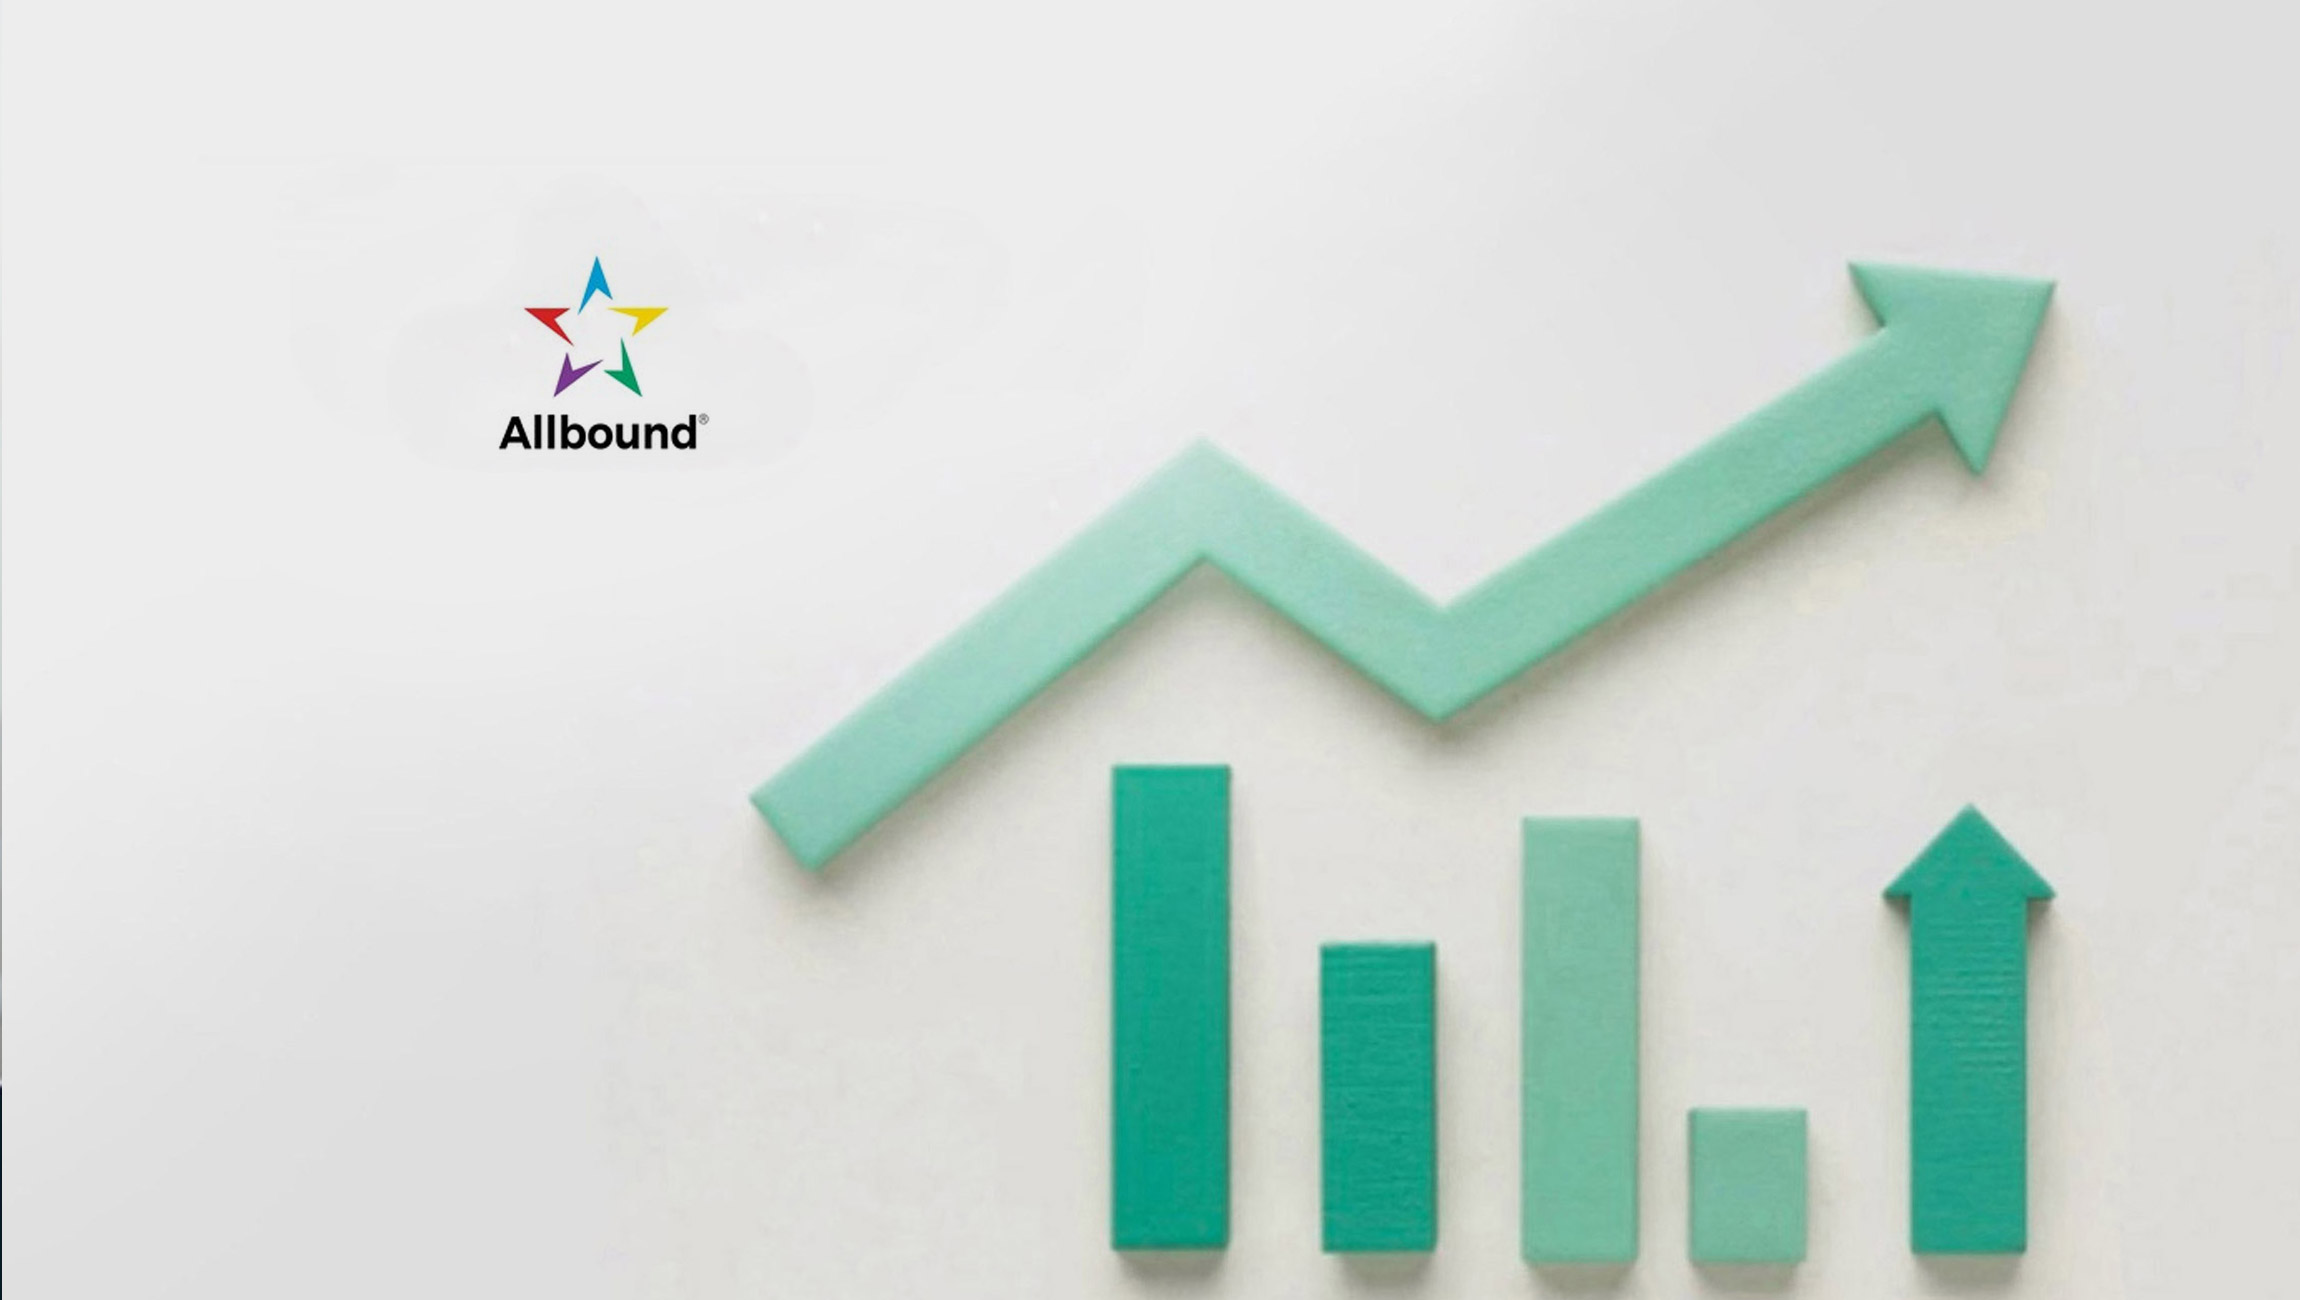 Allbound Reveals Channel Partner Actions to Increase Retention 10X